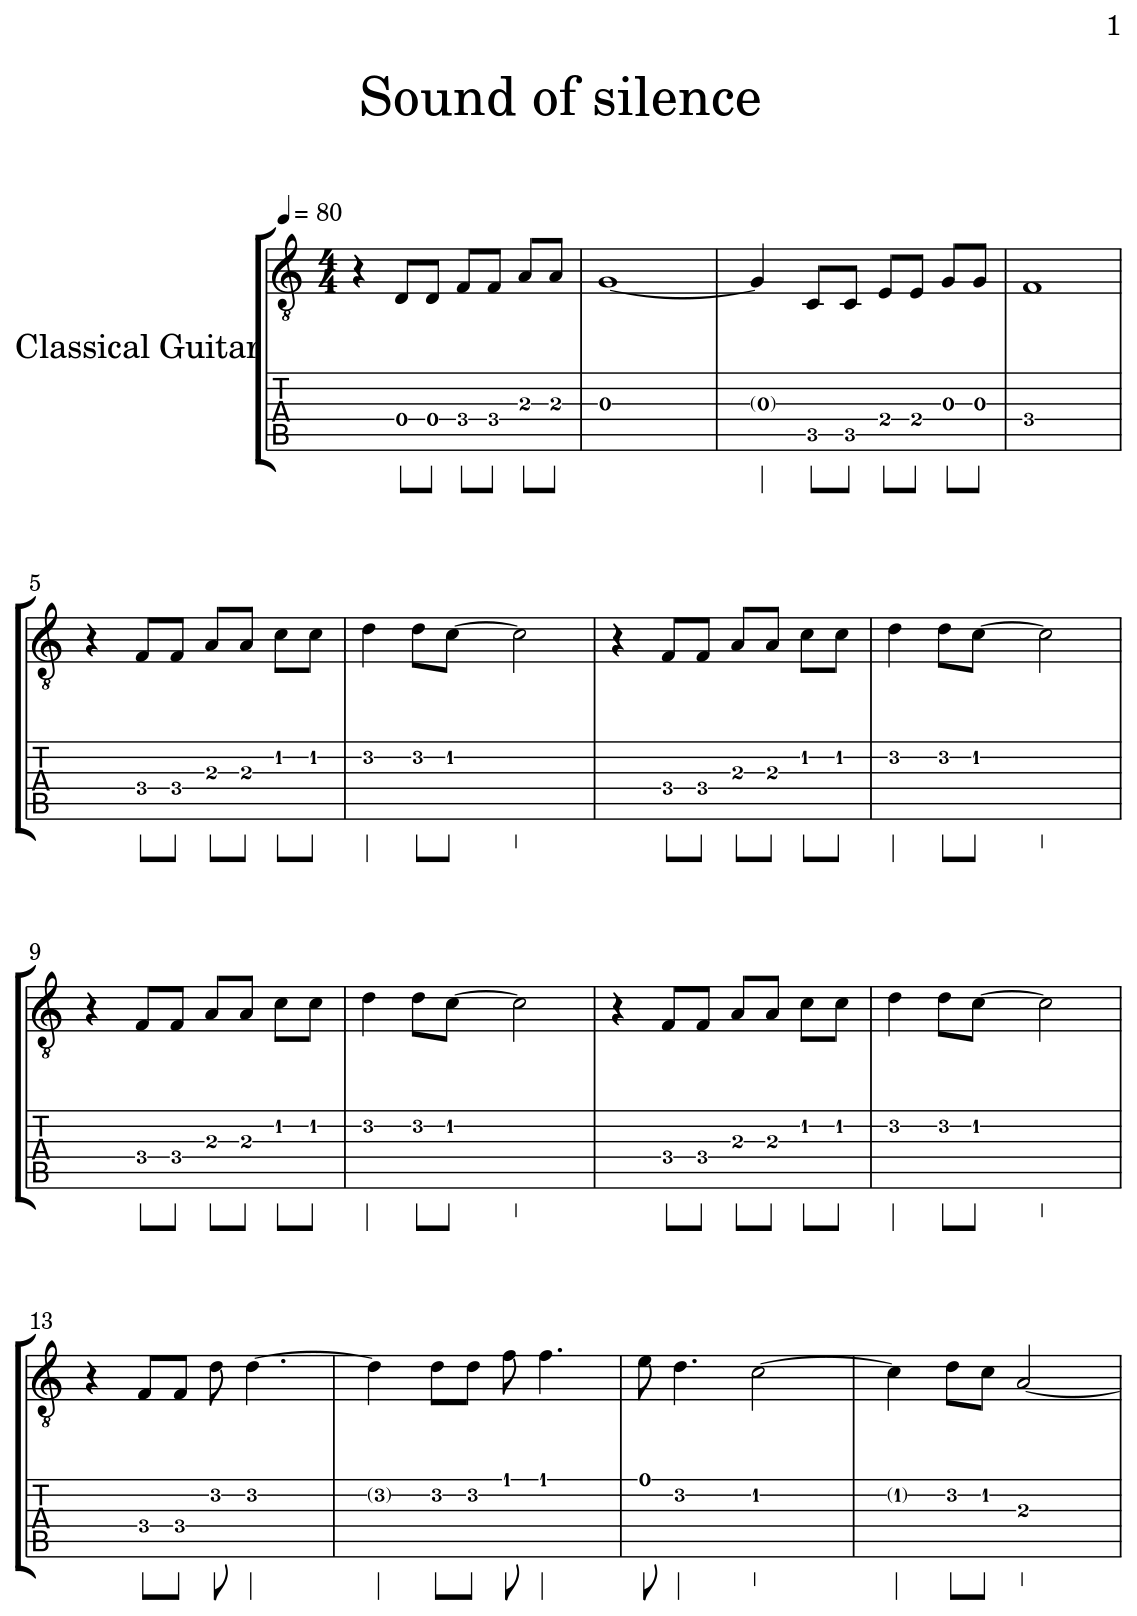 Sound of silence - Sheet music for Classical Guitar